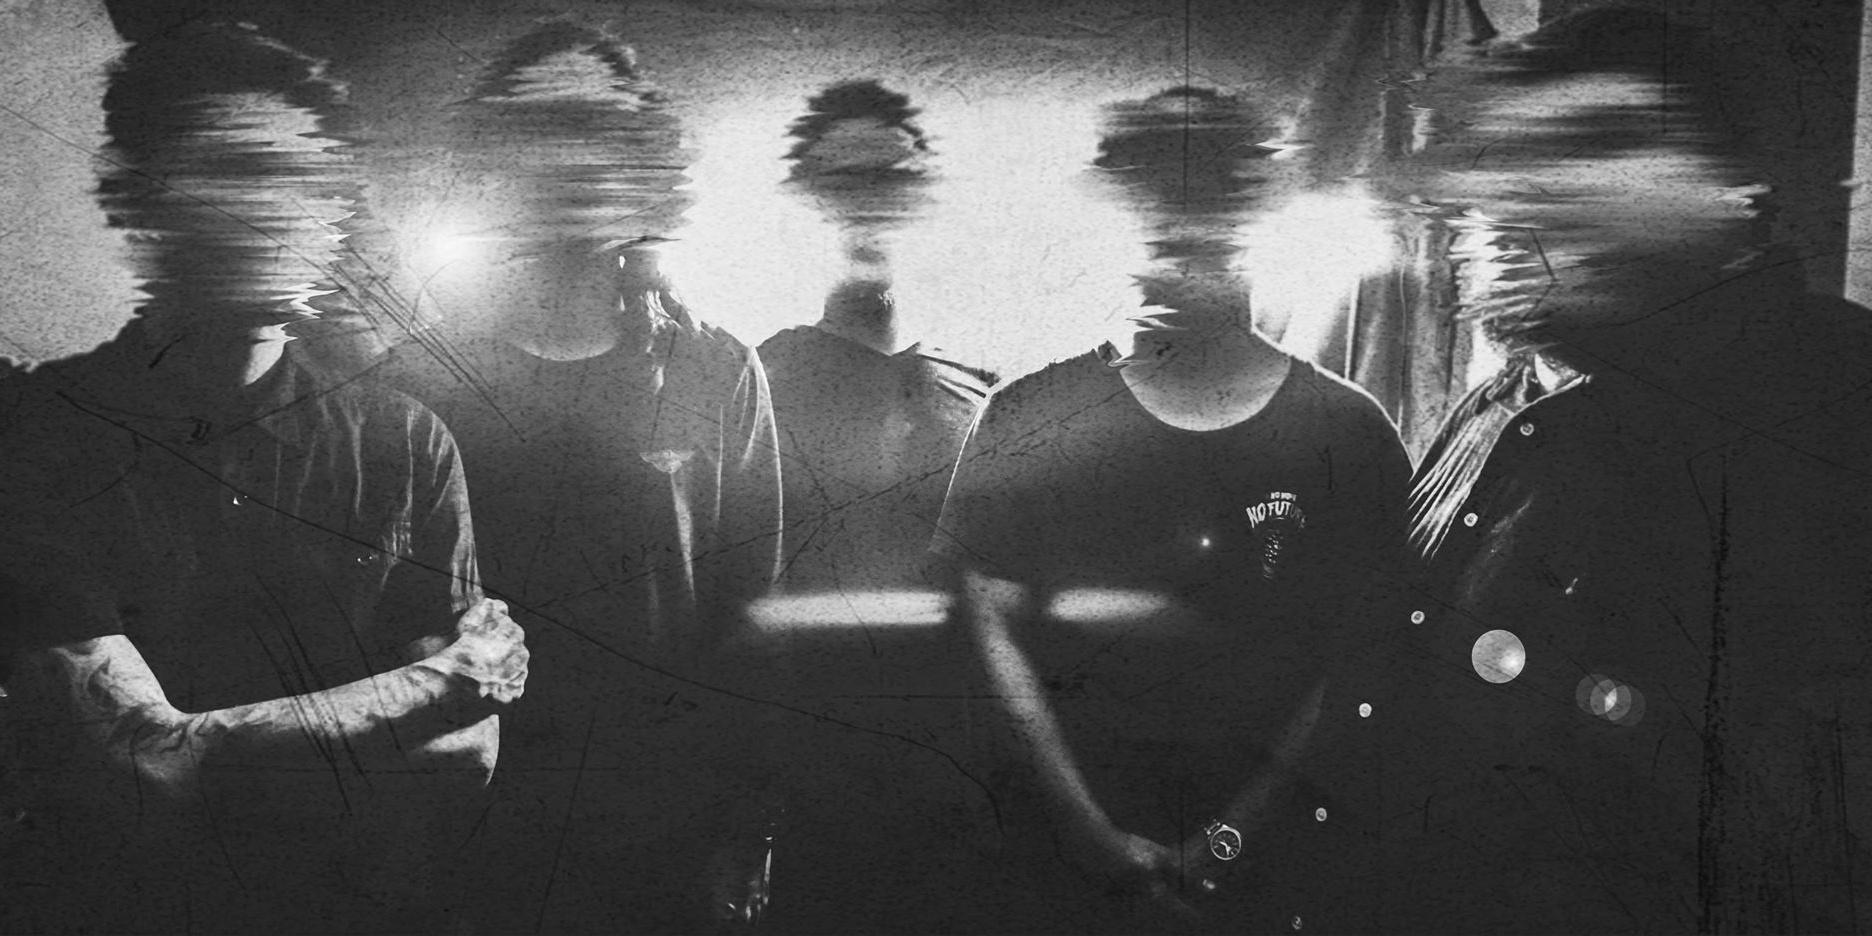 Fell the Mighty unveil debut EP Atrocities – listen